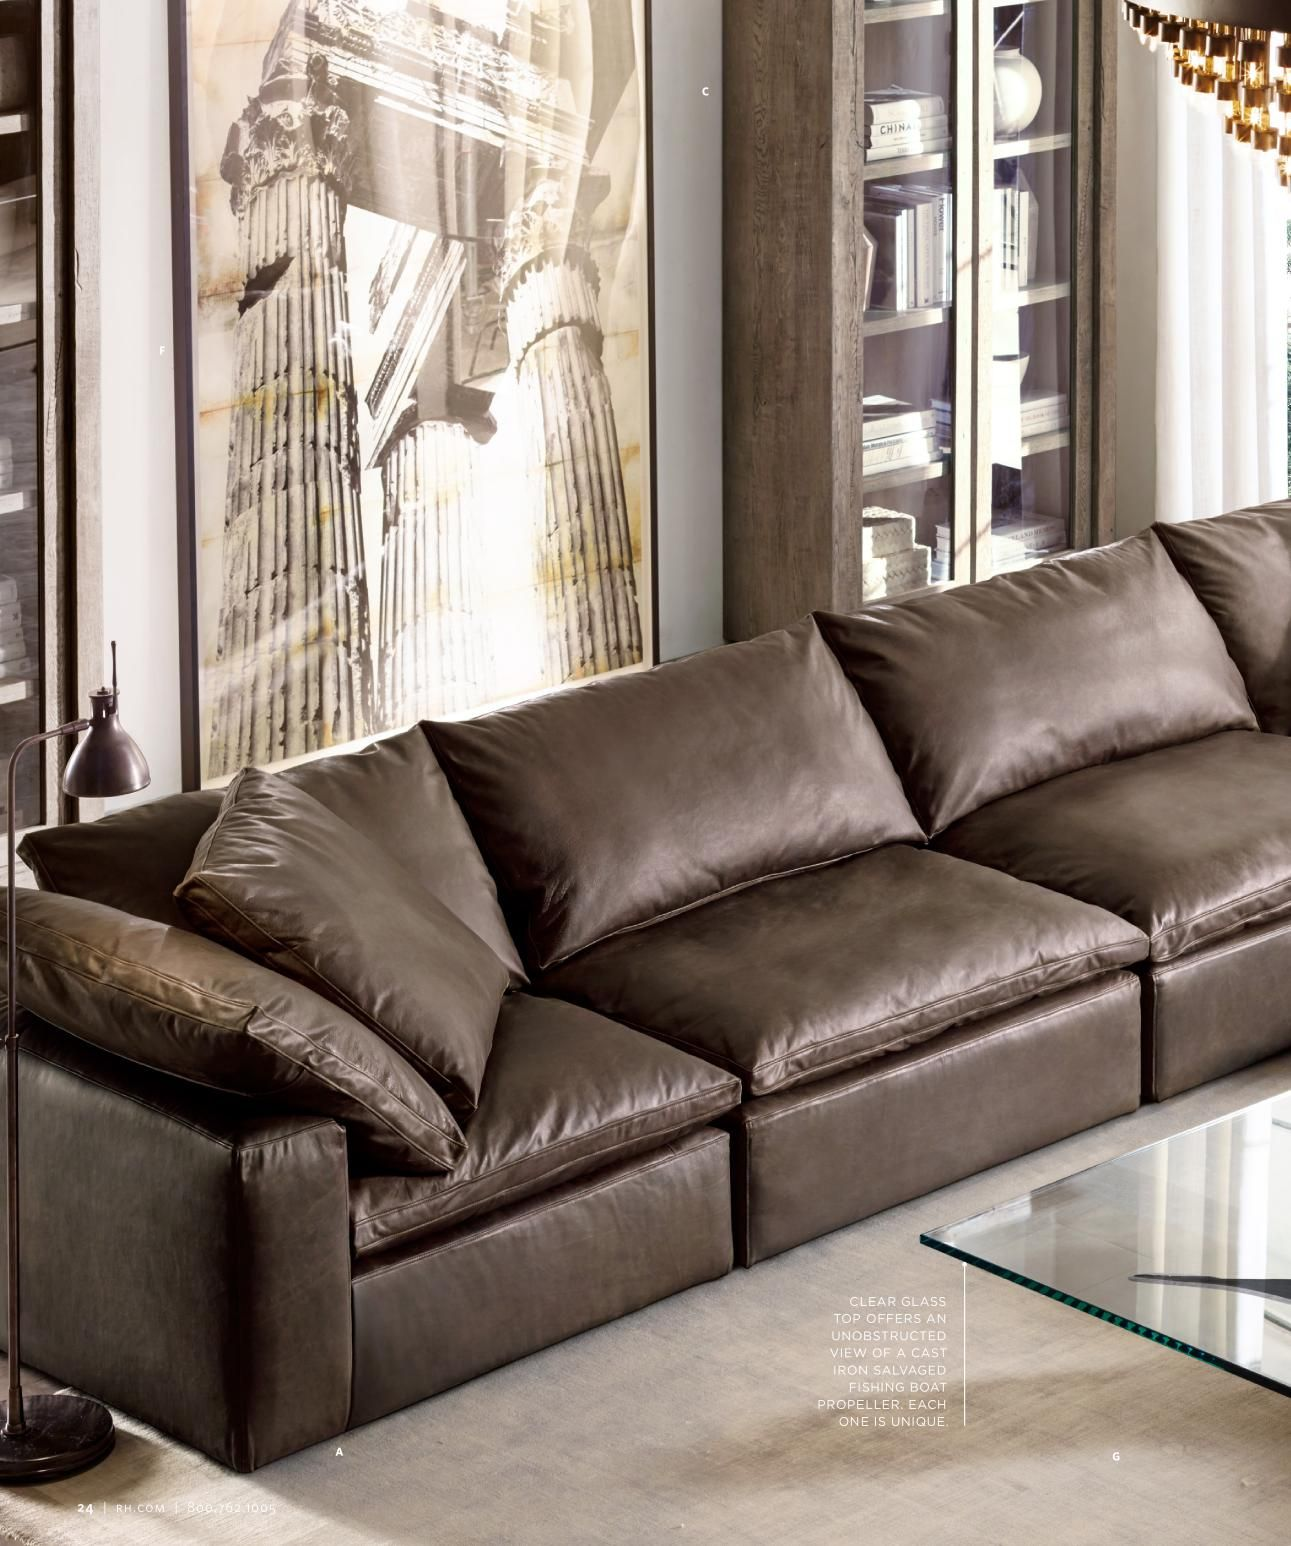 RH Cloud Leather Sofa I want it in white